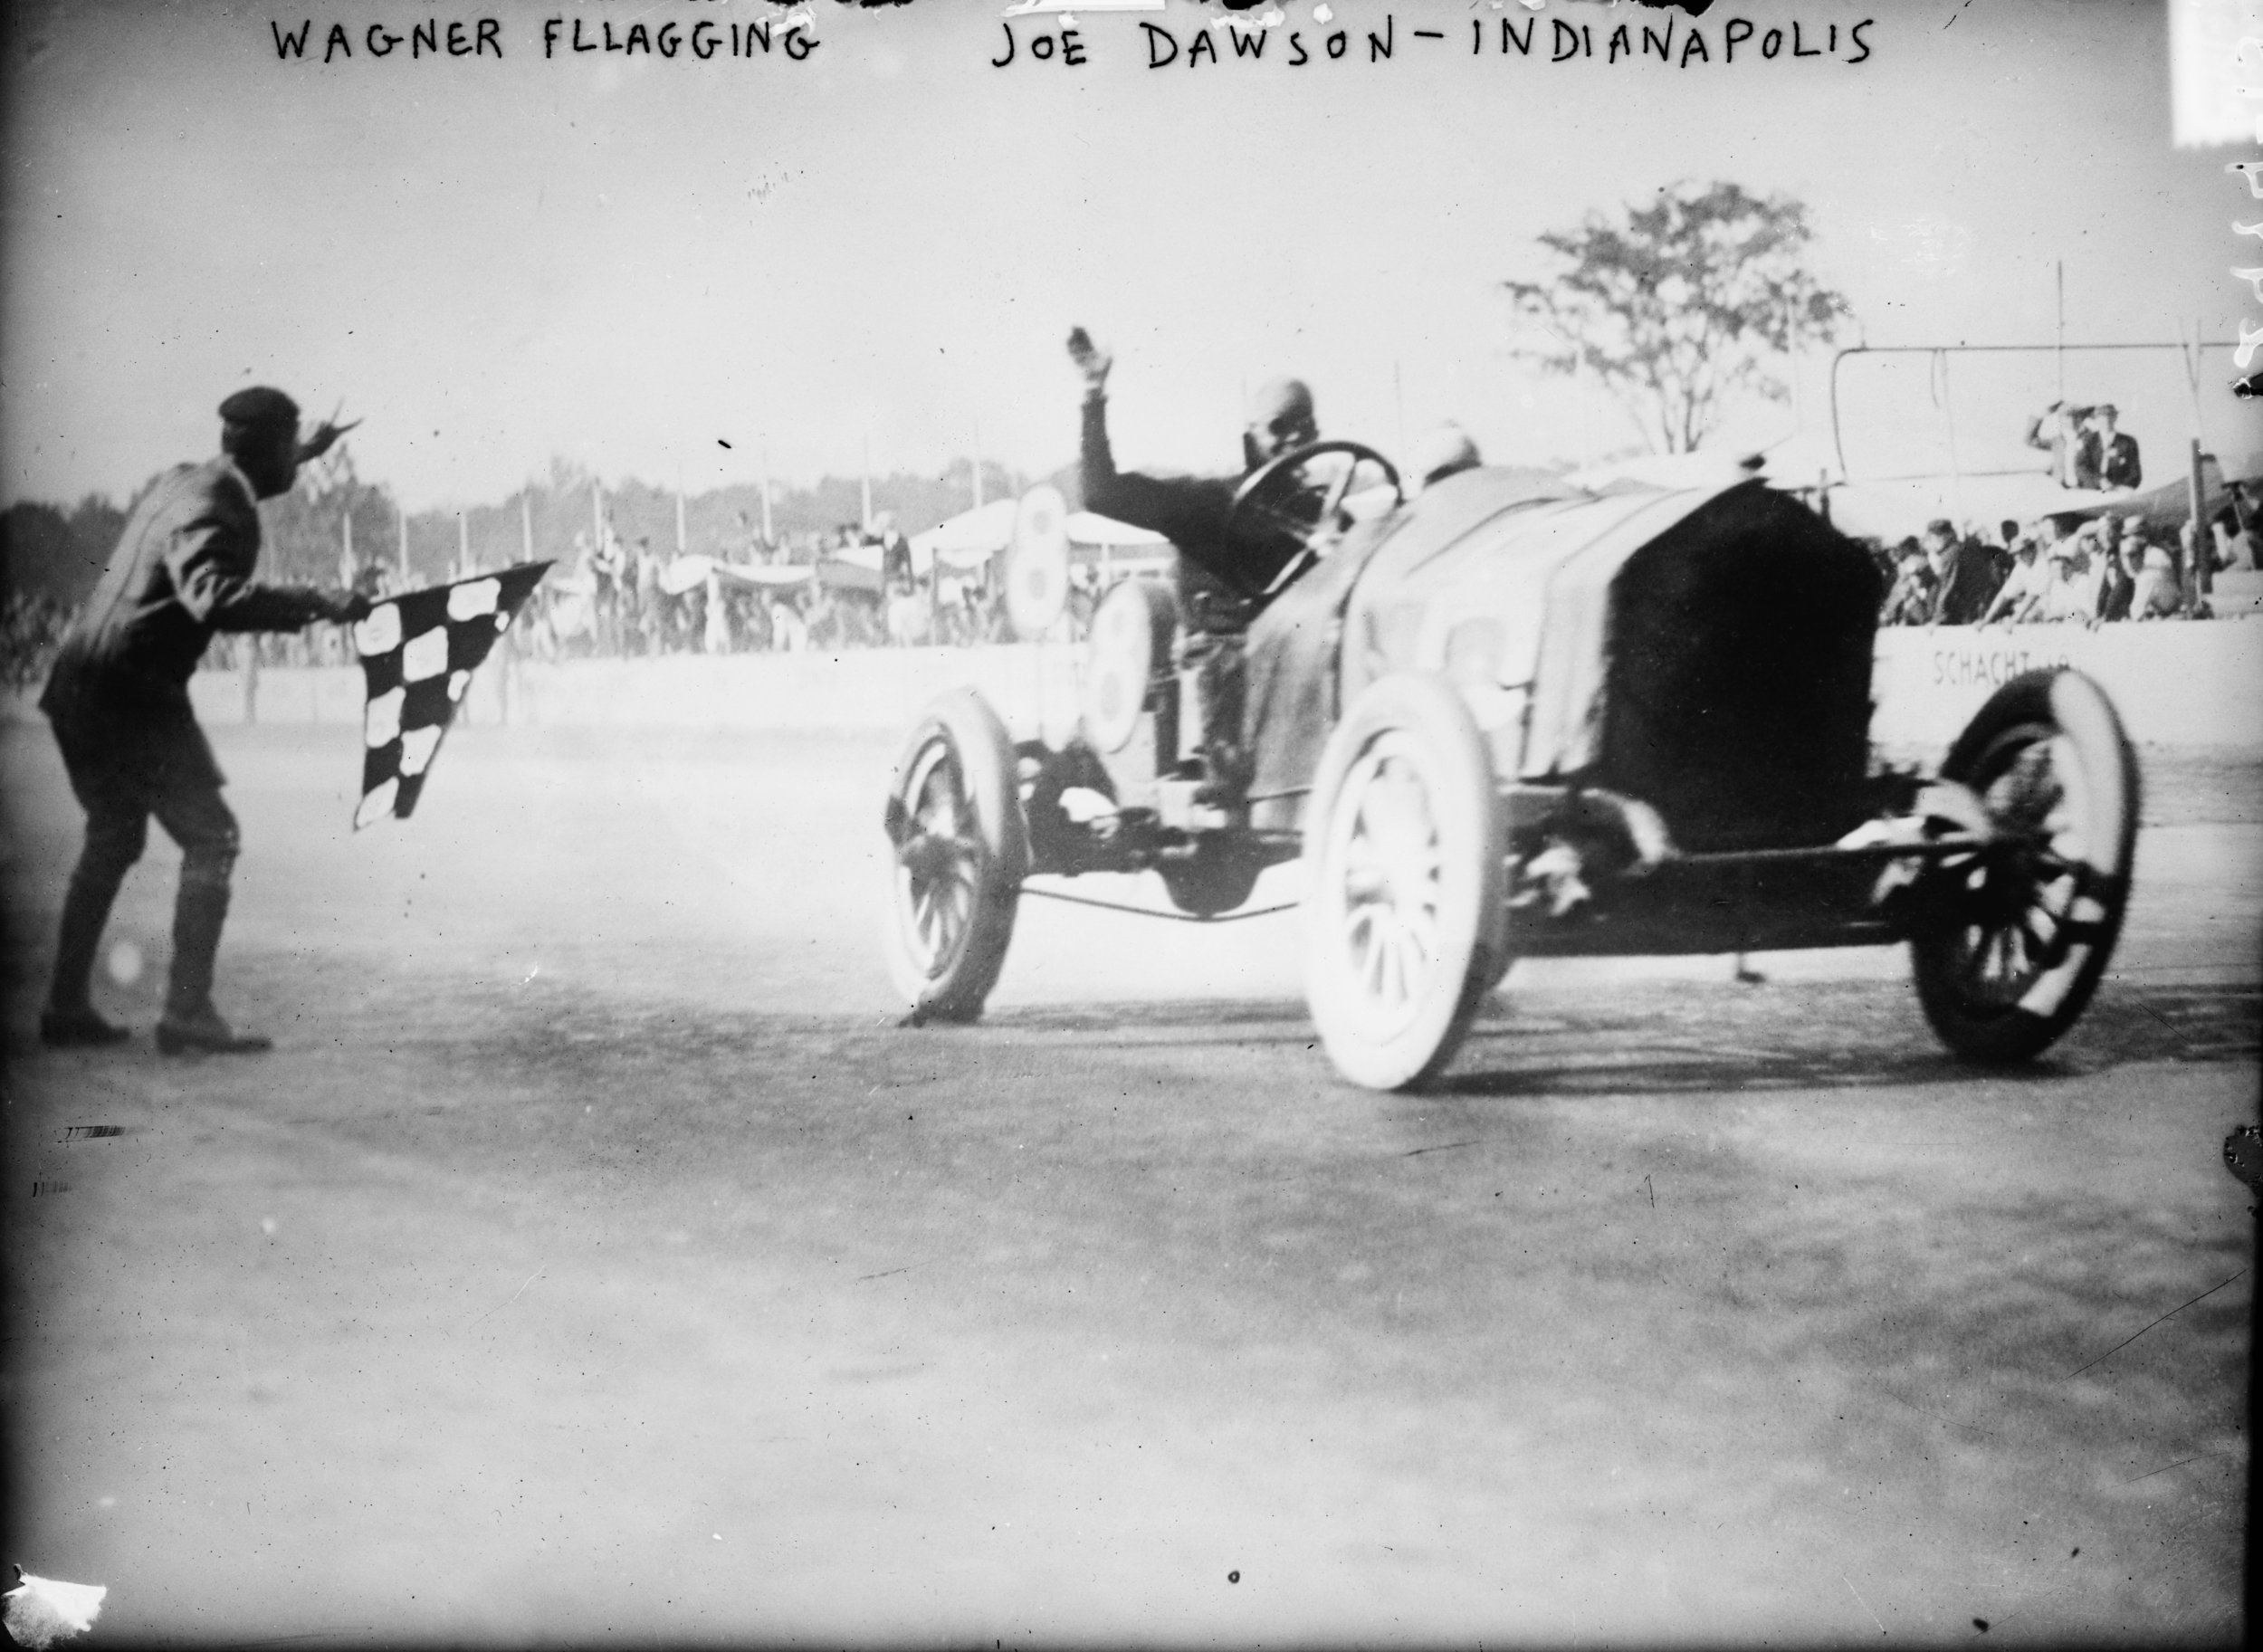 Joe Dawson winning the 1912 Indianapolis 500 race, 1912 (The George Grantham Bain Collection - Library of Congress archive)